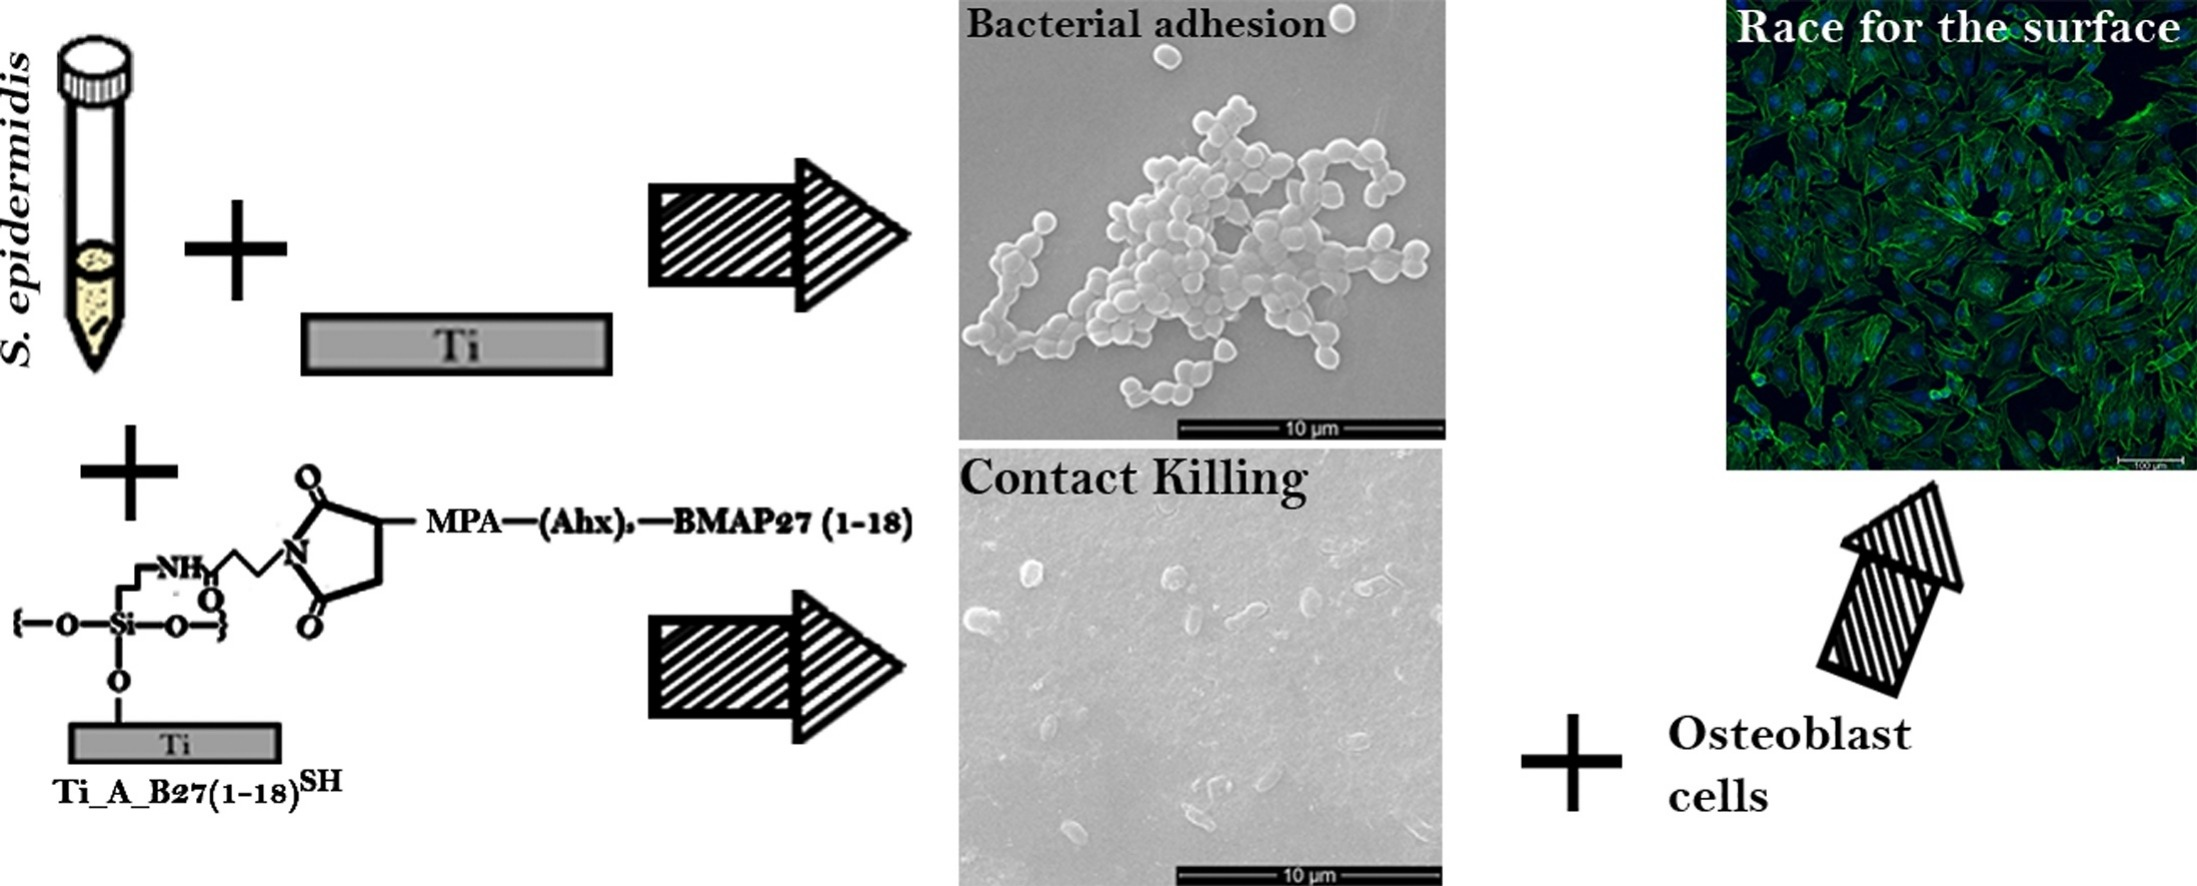 Covalent grafting of titanium with a cathelicidin peptide produces an osteoblast compatible surface with antistaphylococcal activity